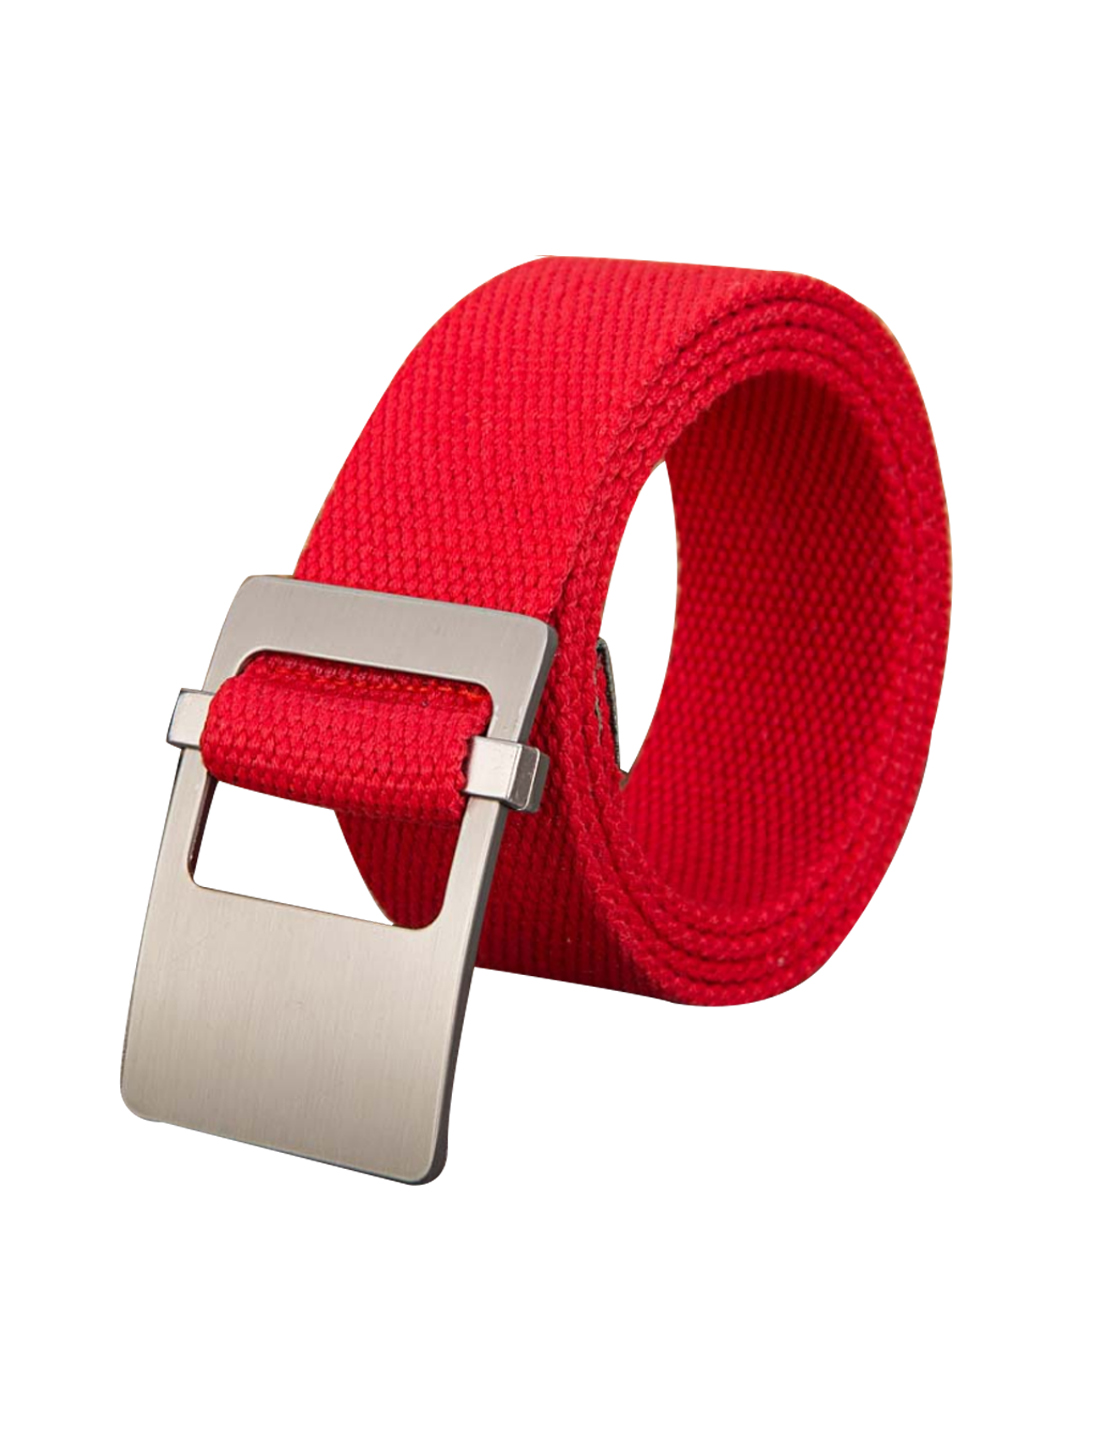 Unisex Canvas Adjustable Holeless Flat Metal Buckle Solid Color Belt Red